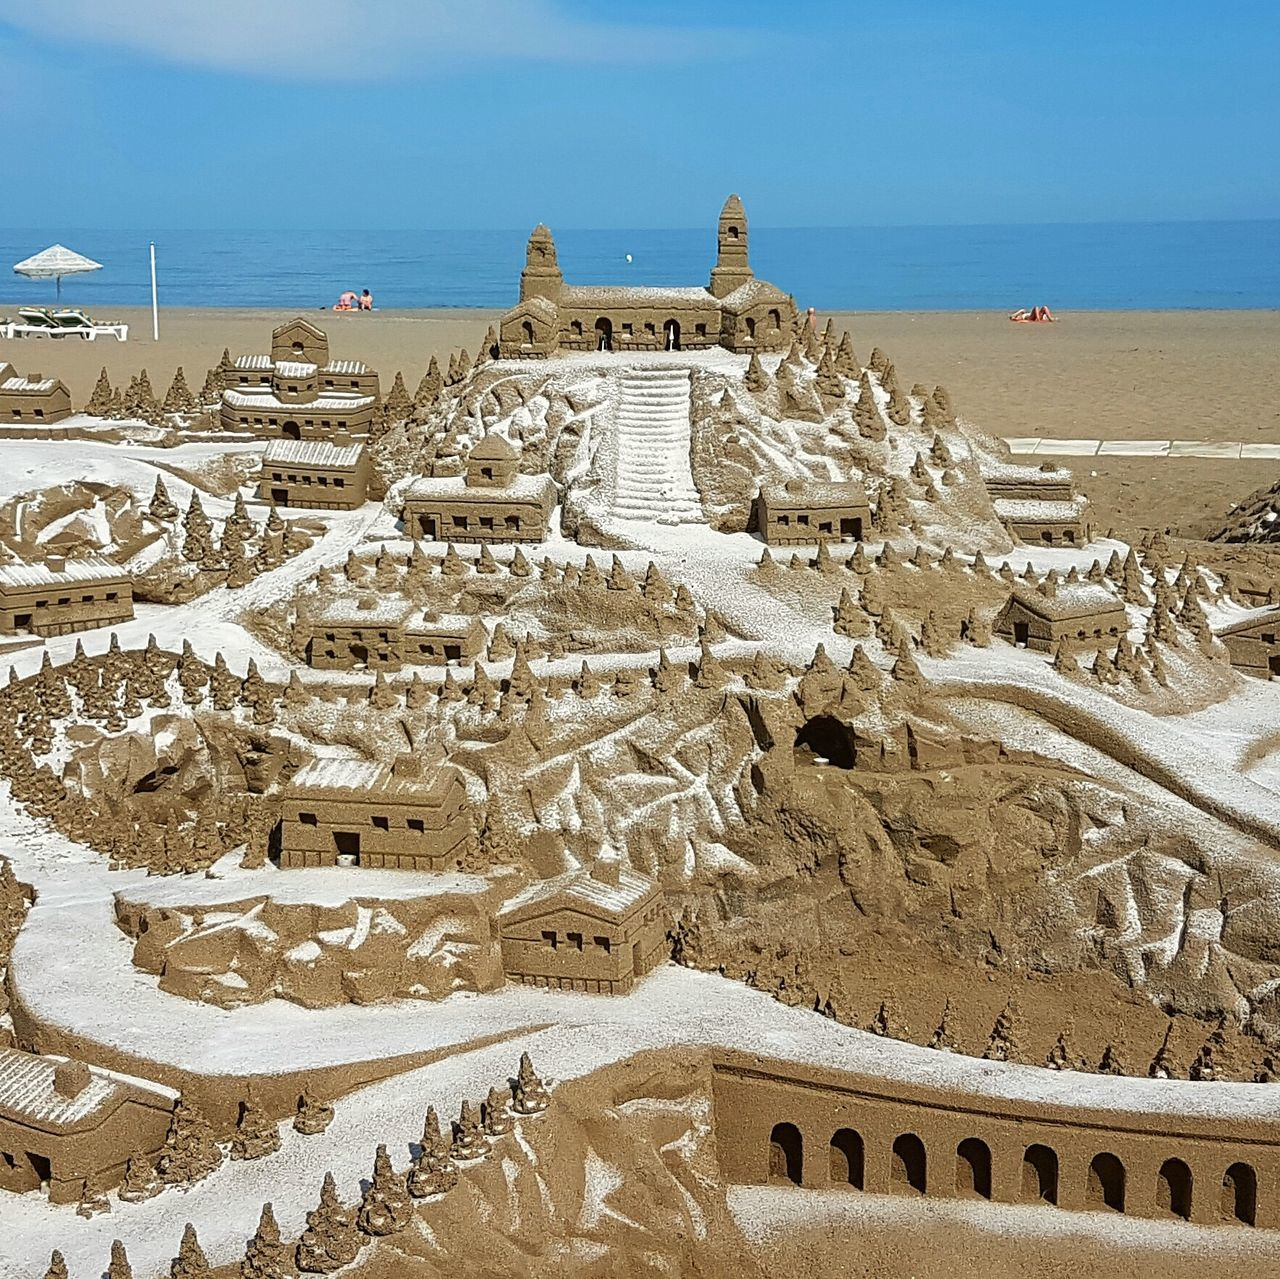 history, travel destinations, outdoors, nature, sand, day, sky, scenics, tourism, architecture, ancient, built structure, sea, ancient civilization, landscape, no people, horizon over water, beach, beauty in nature